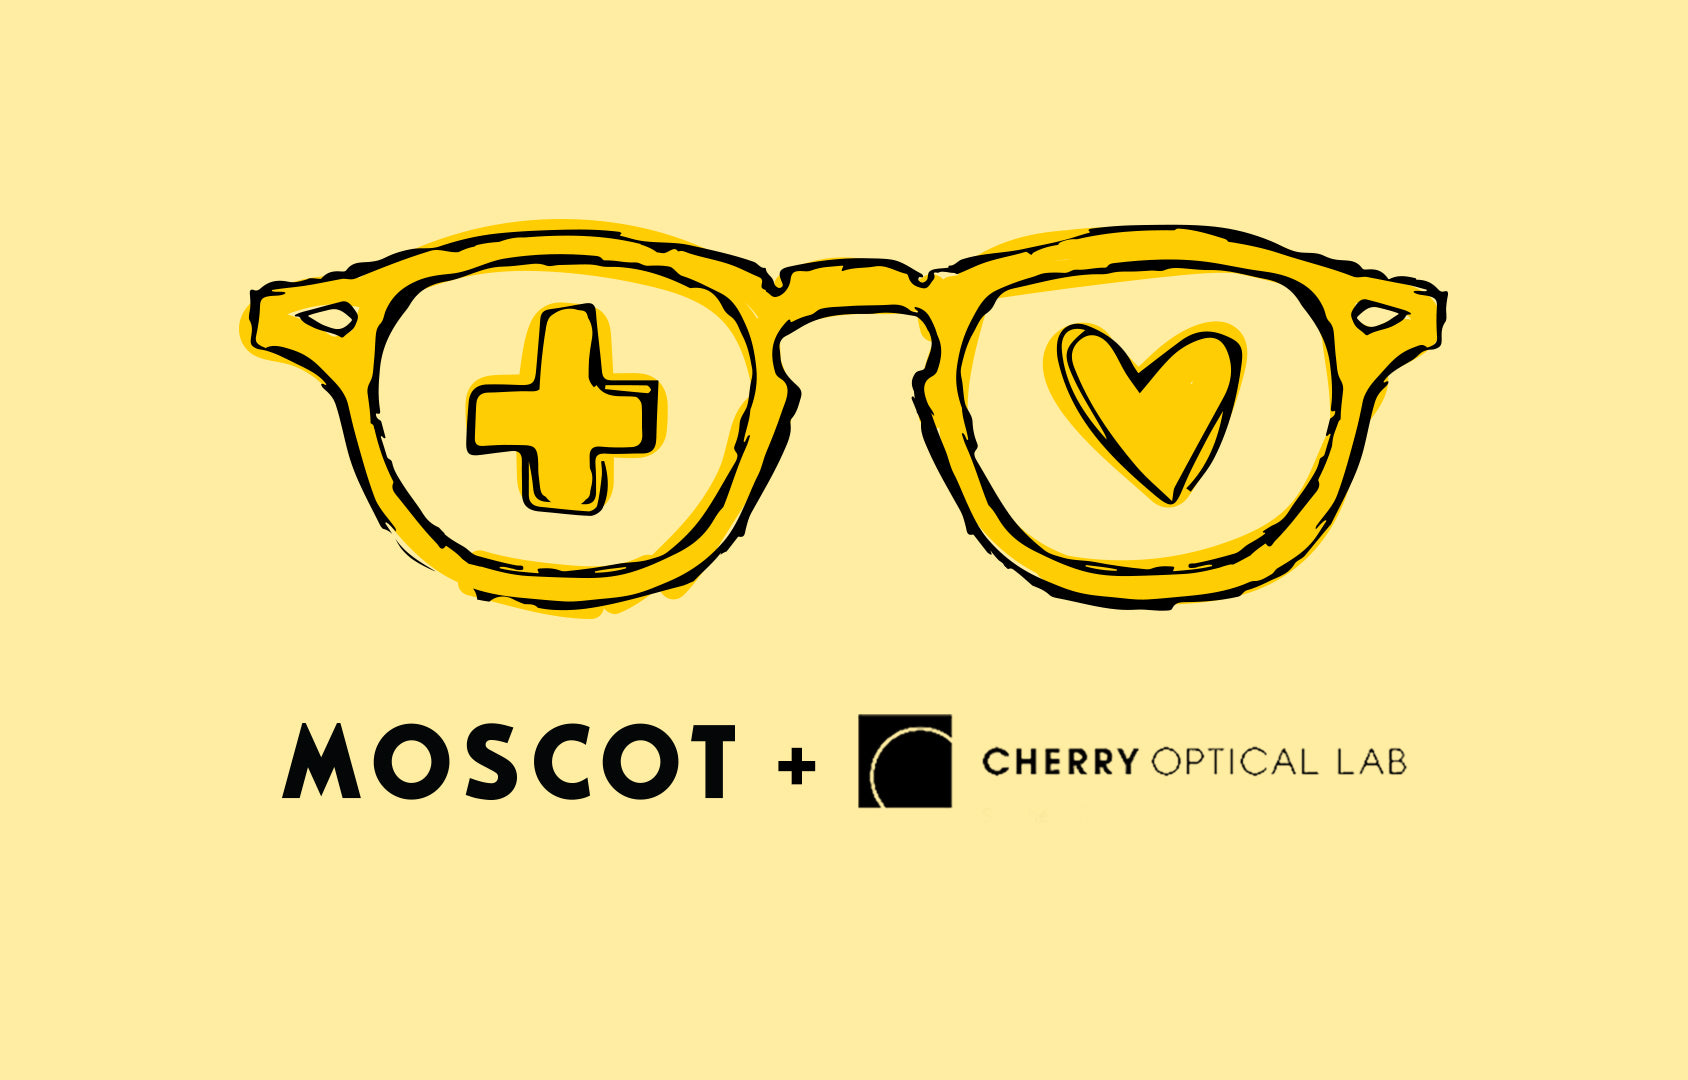 MOSCOT and Cherry Optical Lab partnership image